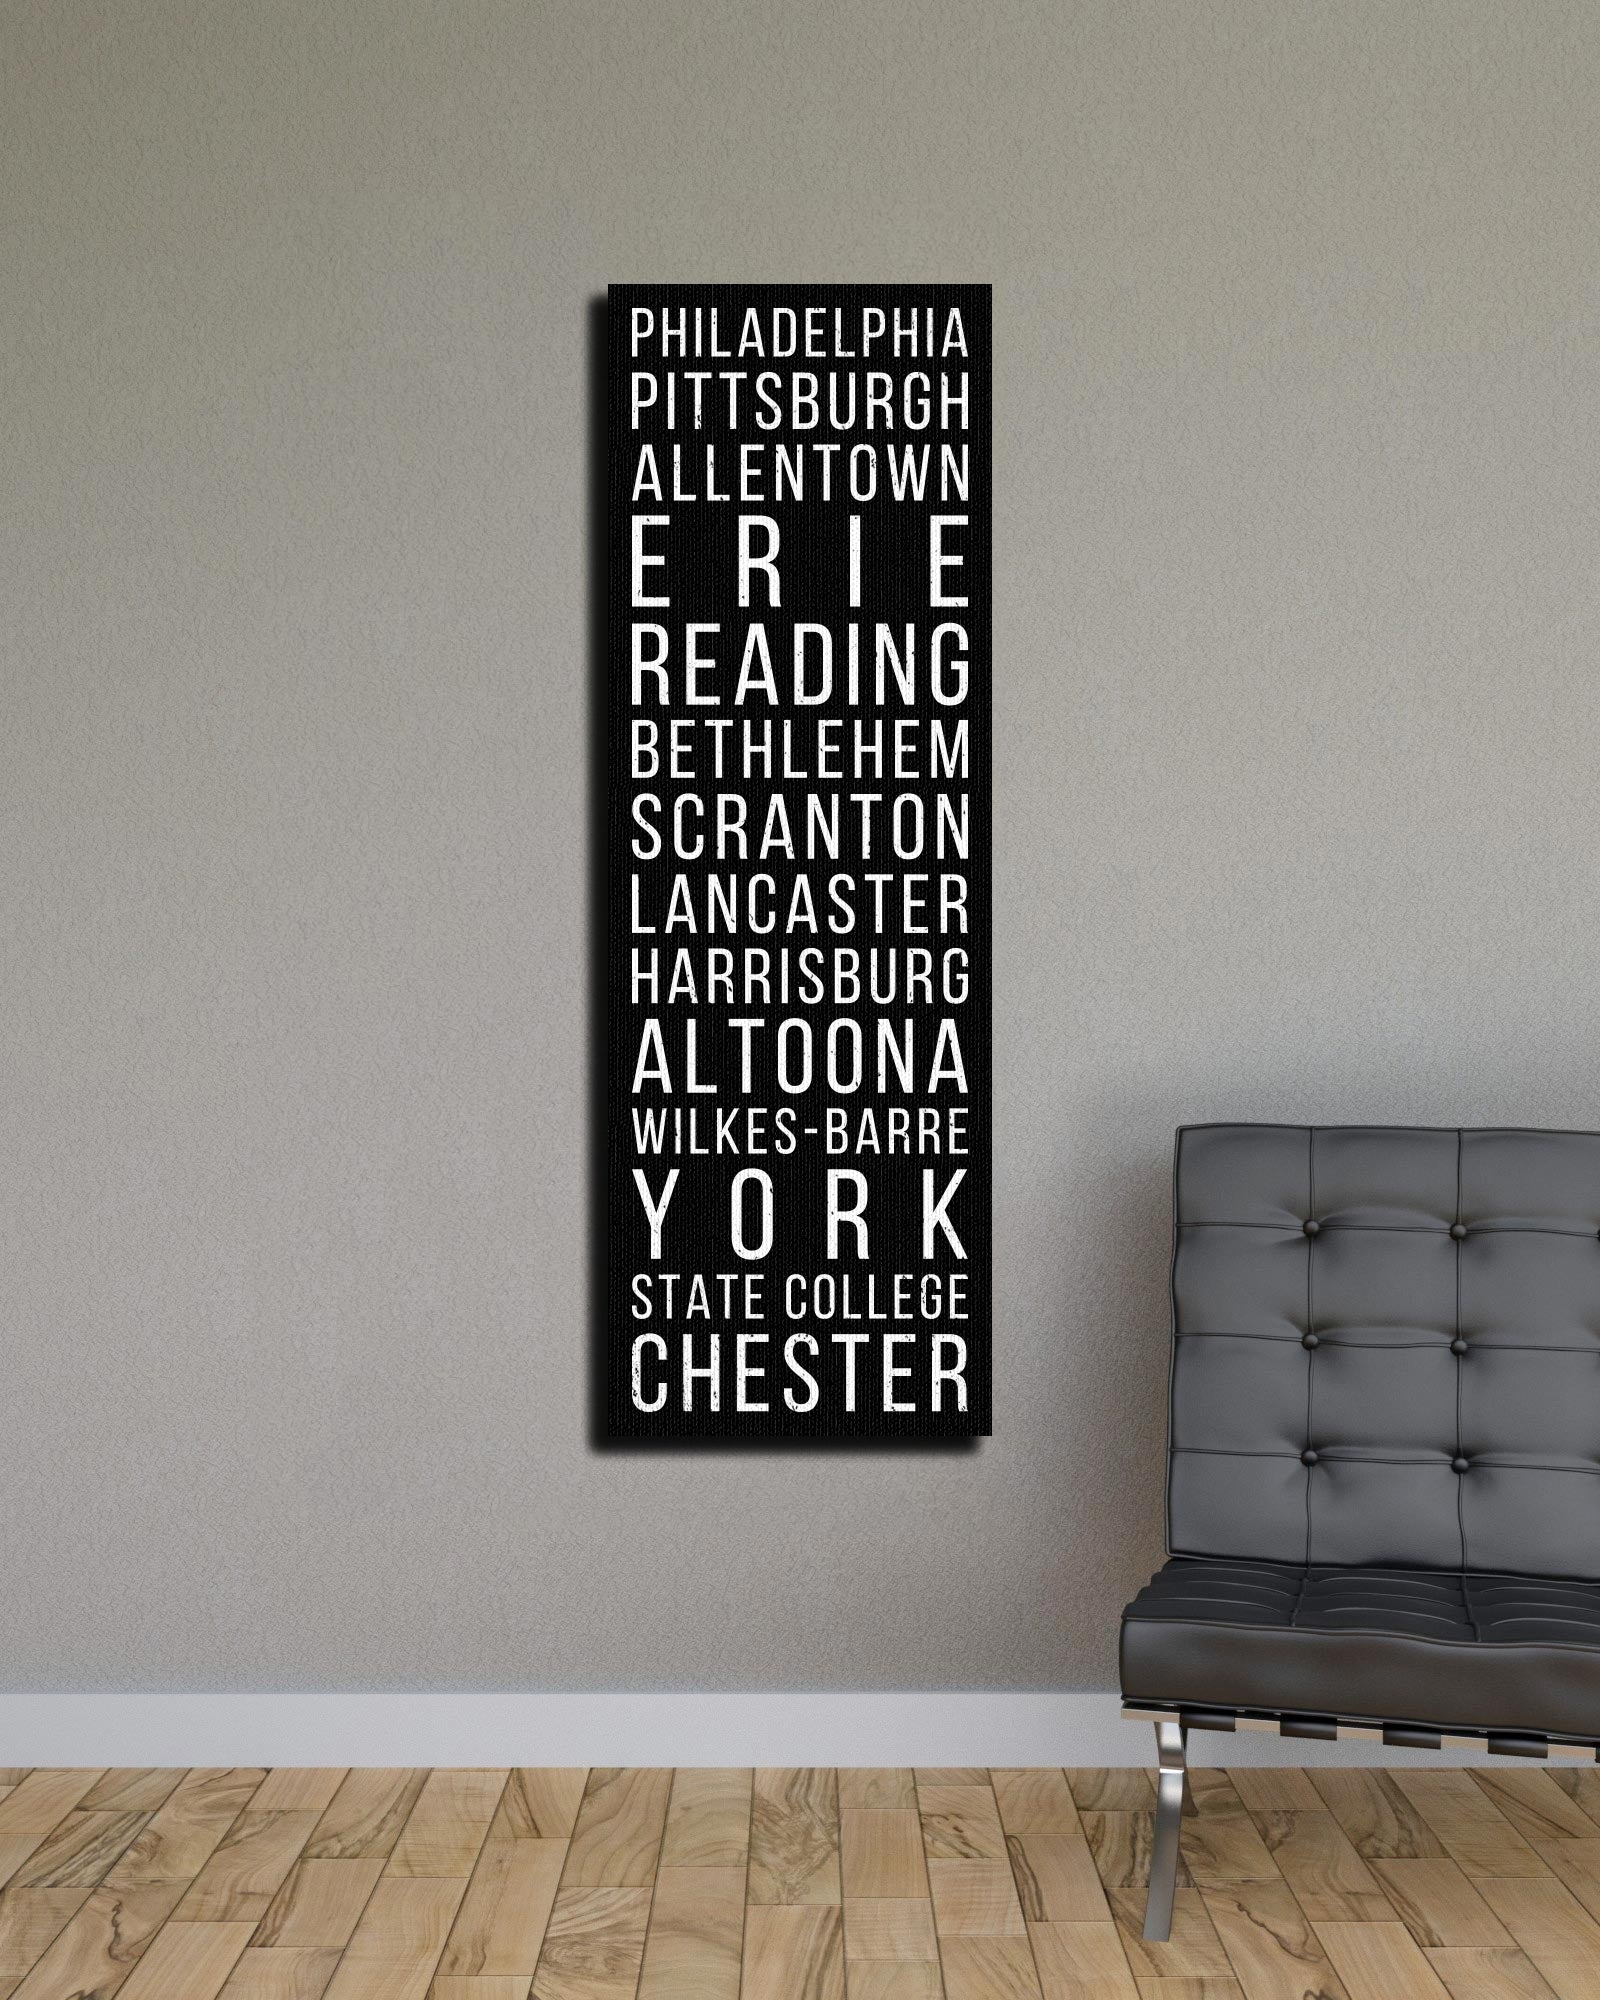 Pennsylvania Philadelphia Pittsburgh Allentown Bus Scroll Subway Canvas Print